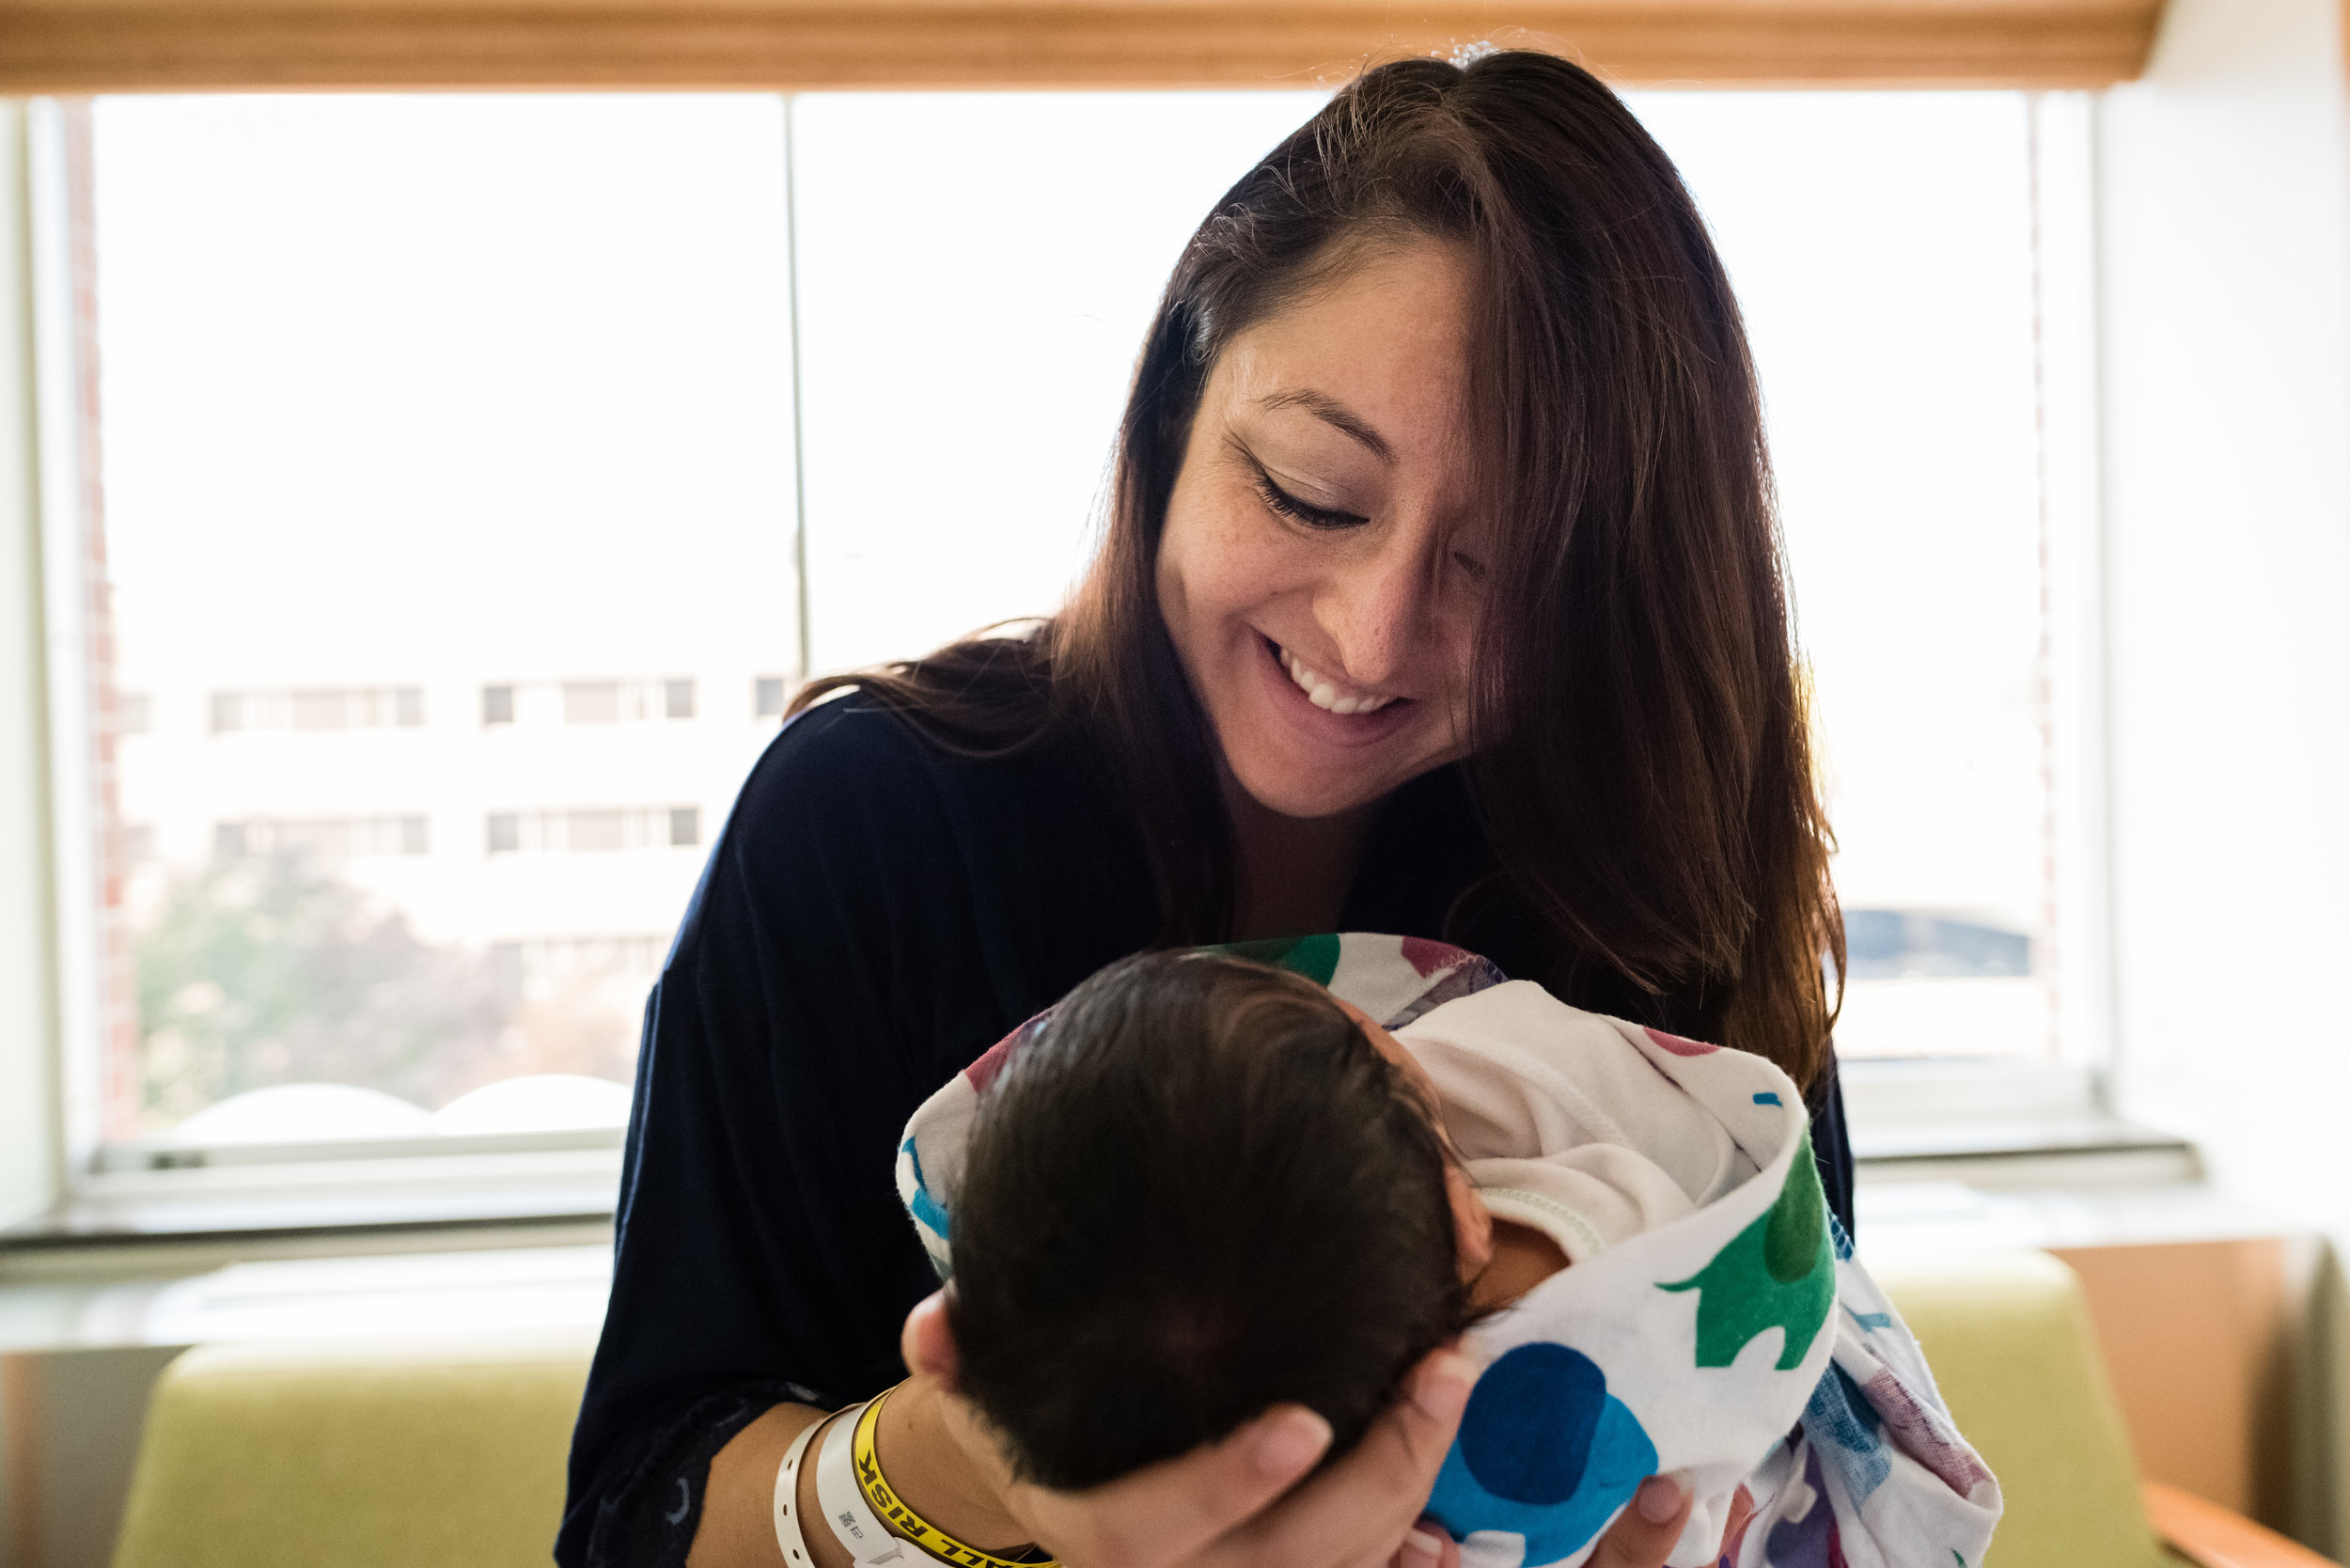 Happy mom smiling at newborn in Northern Virginia Hospital by Family photographer Nicole Sanchez